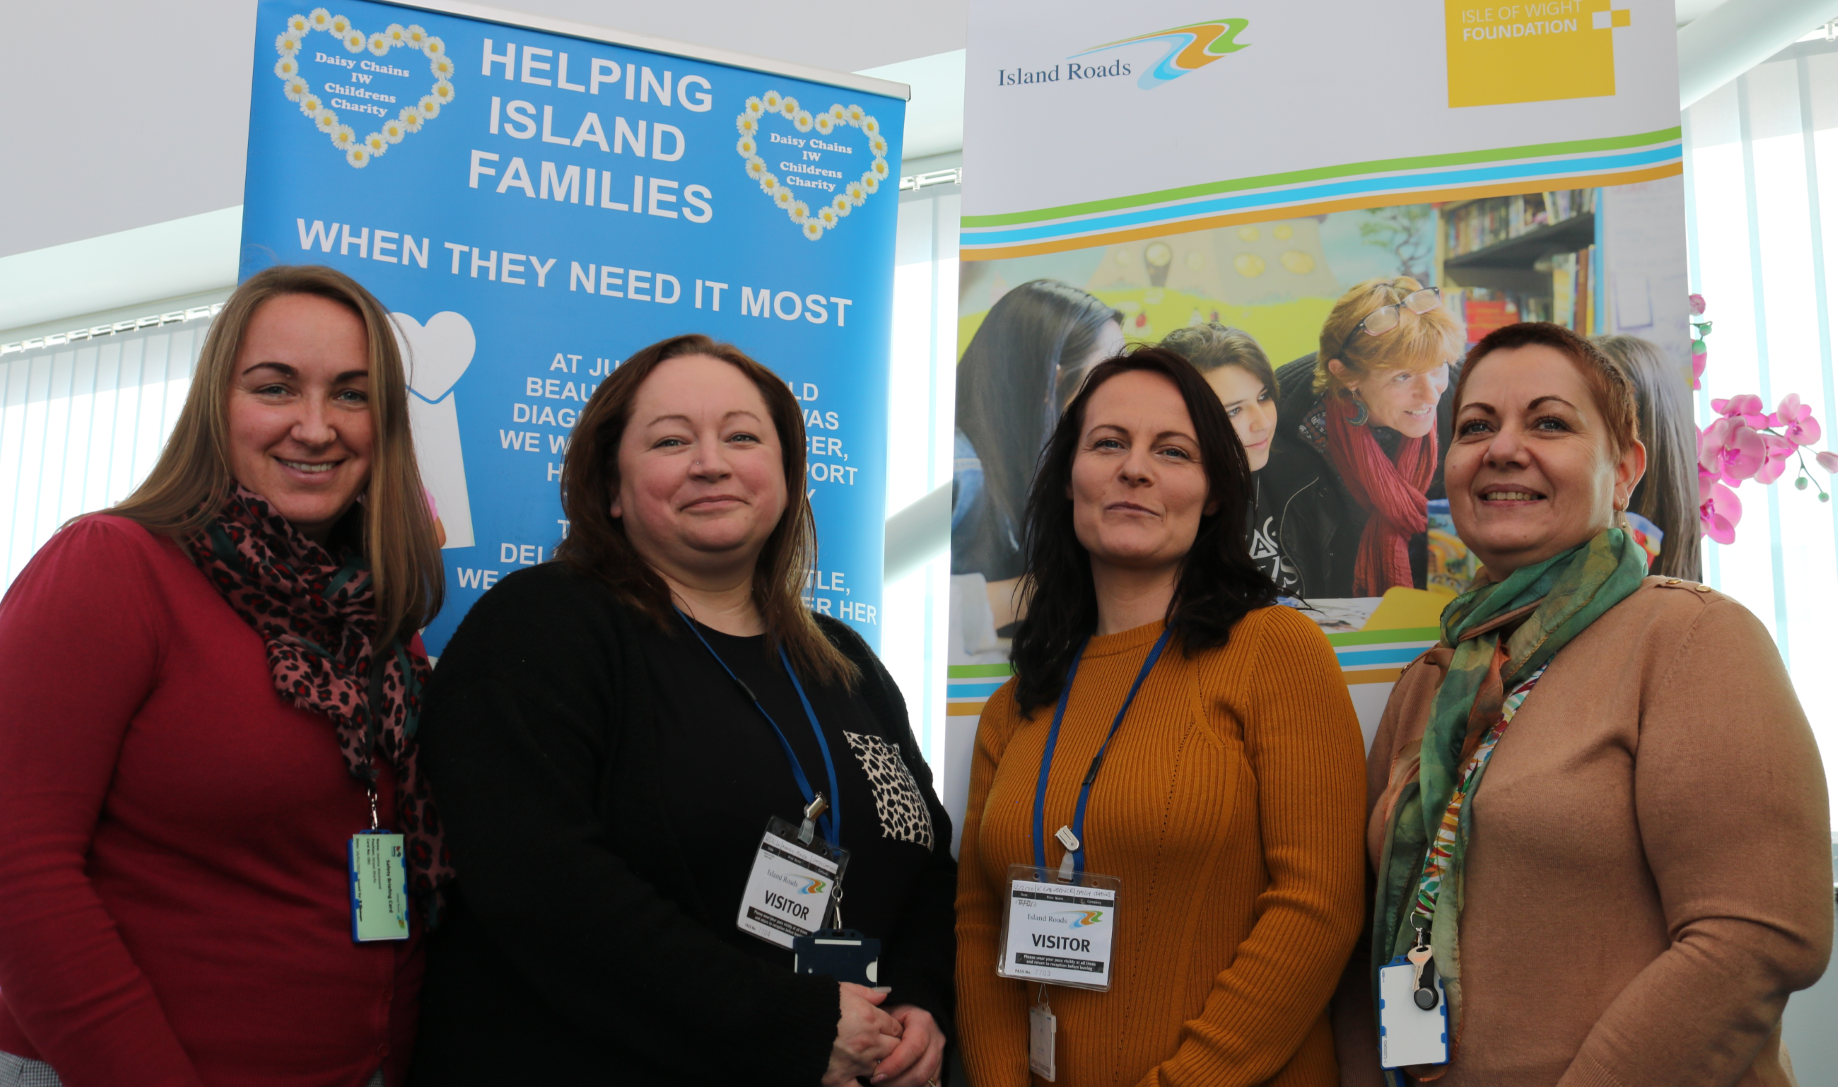 Photo showing four people, two from Daisy Chains charity, two from Island Roads, in front of colourful banners promoting the charity and the IW Foundation